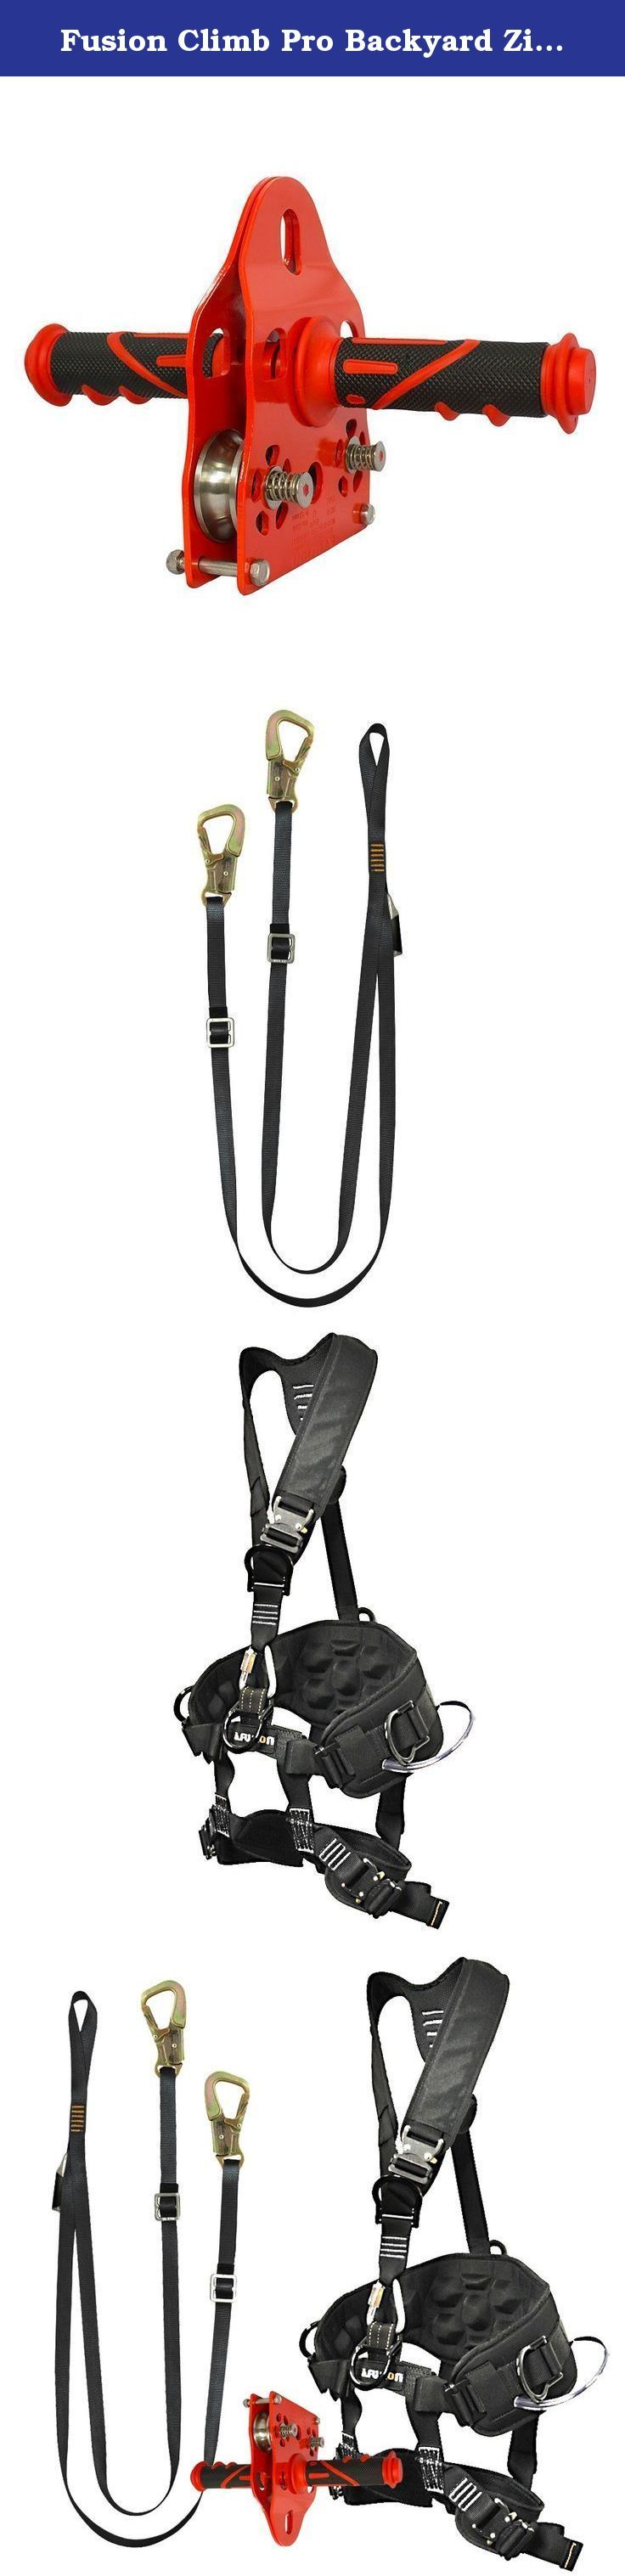 Fusion Climb Pro Backyard Zip Line Kit Fk